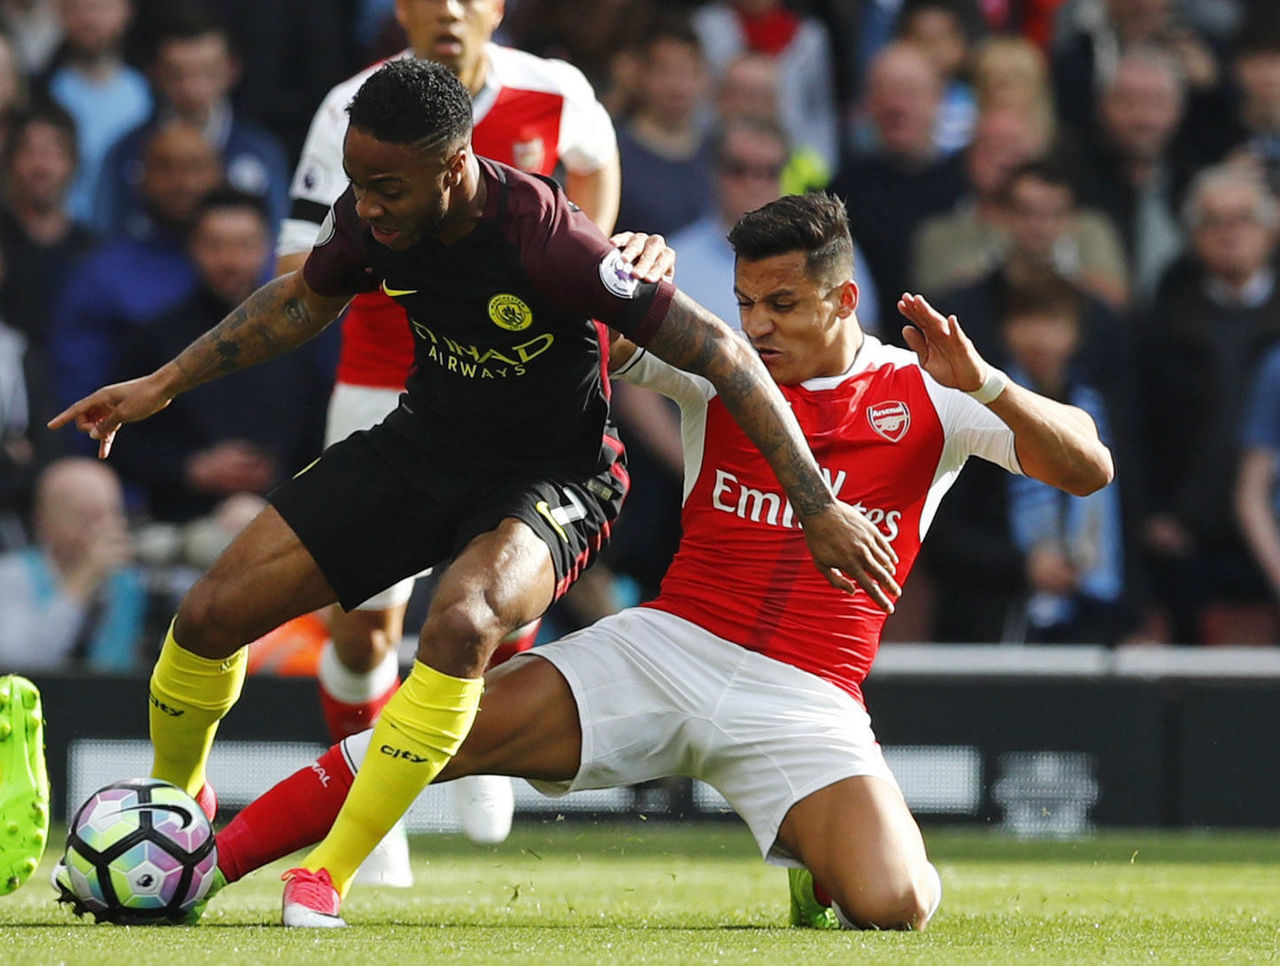 Cropped 2017 04 02t152717z 134148437 mt1aci14772753 rtrmadp 3 soccer england ars mci